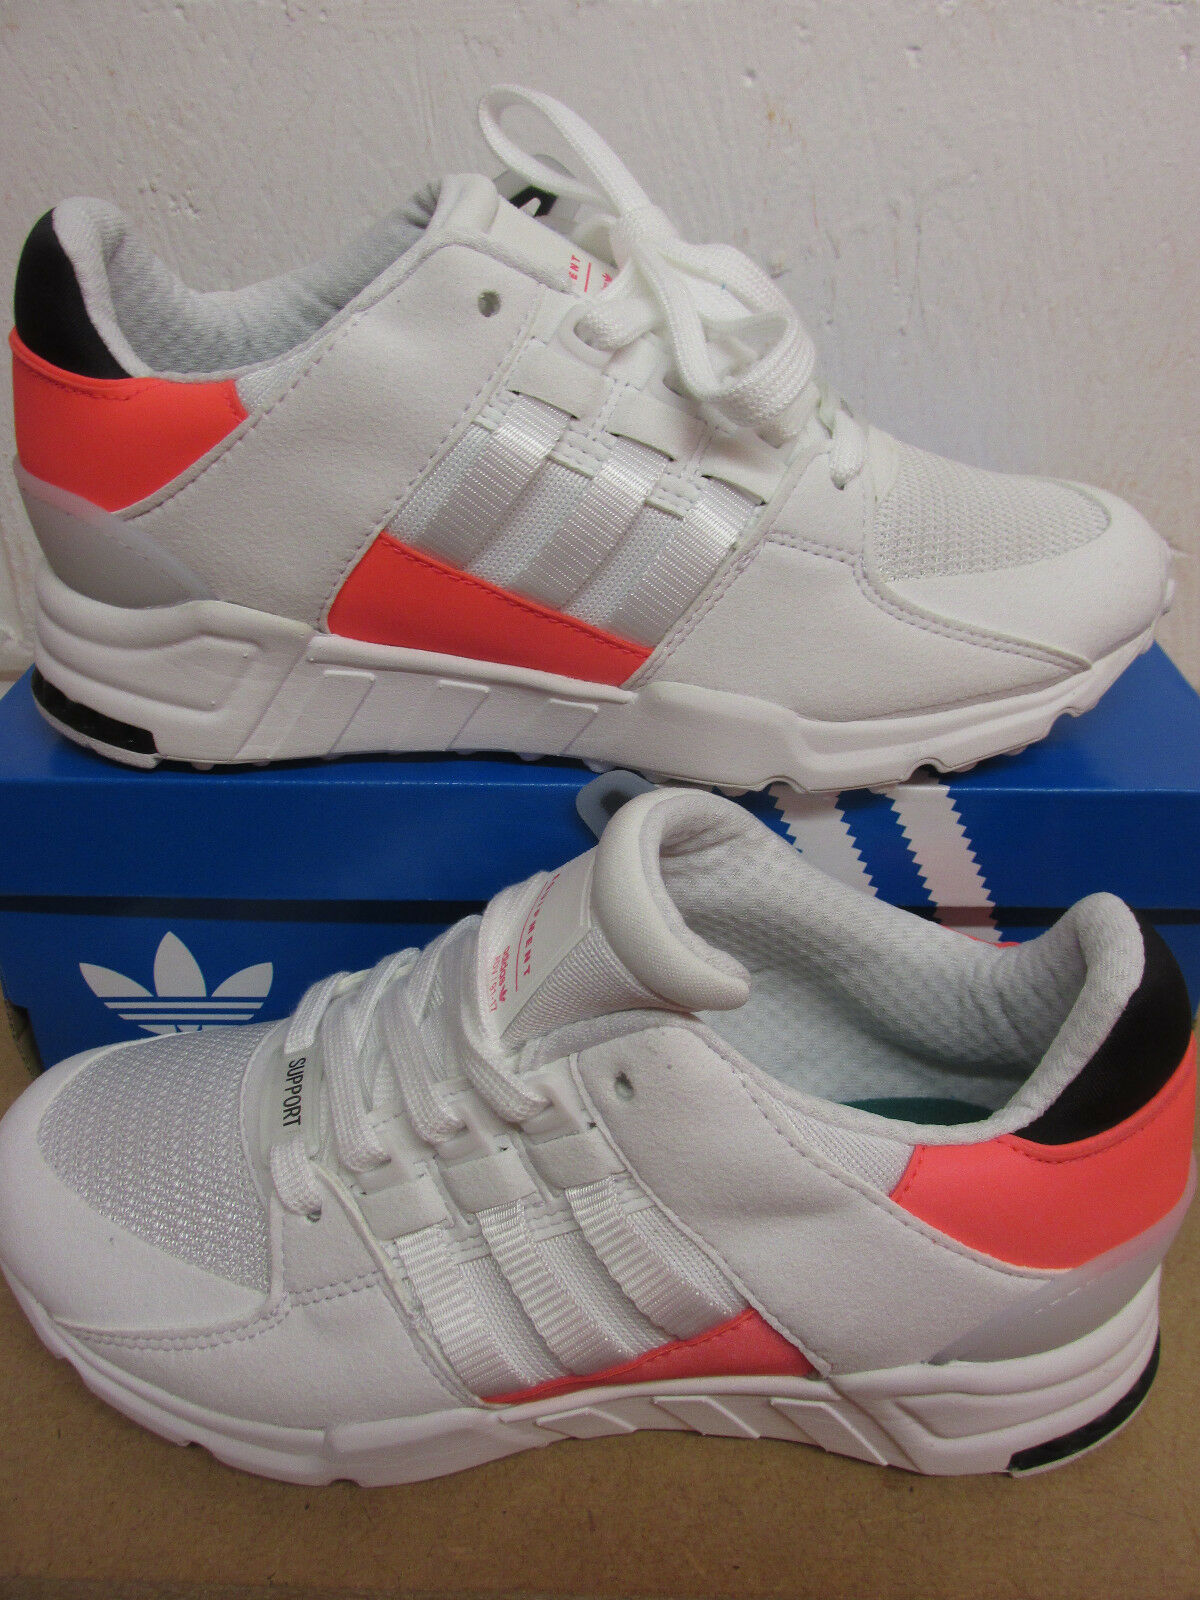 Adidas Originals EQT Support RF hommeRunning Trainers BA7716 Sneakers